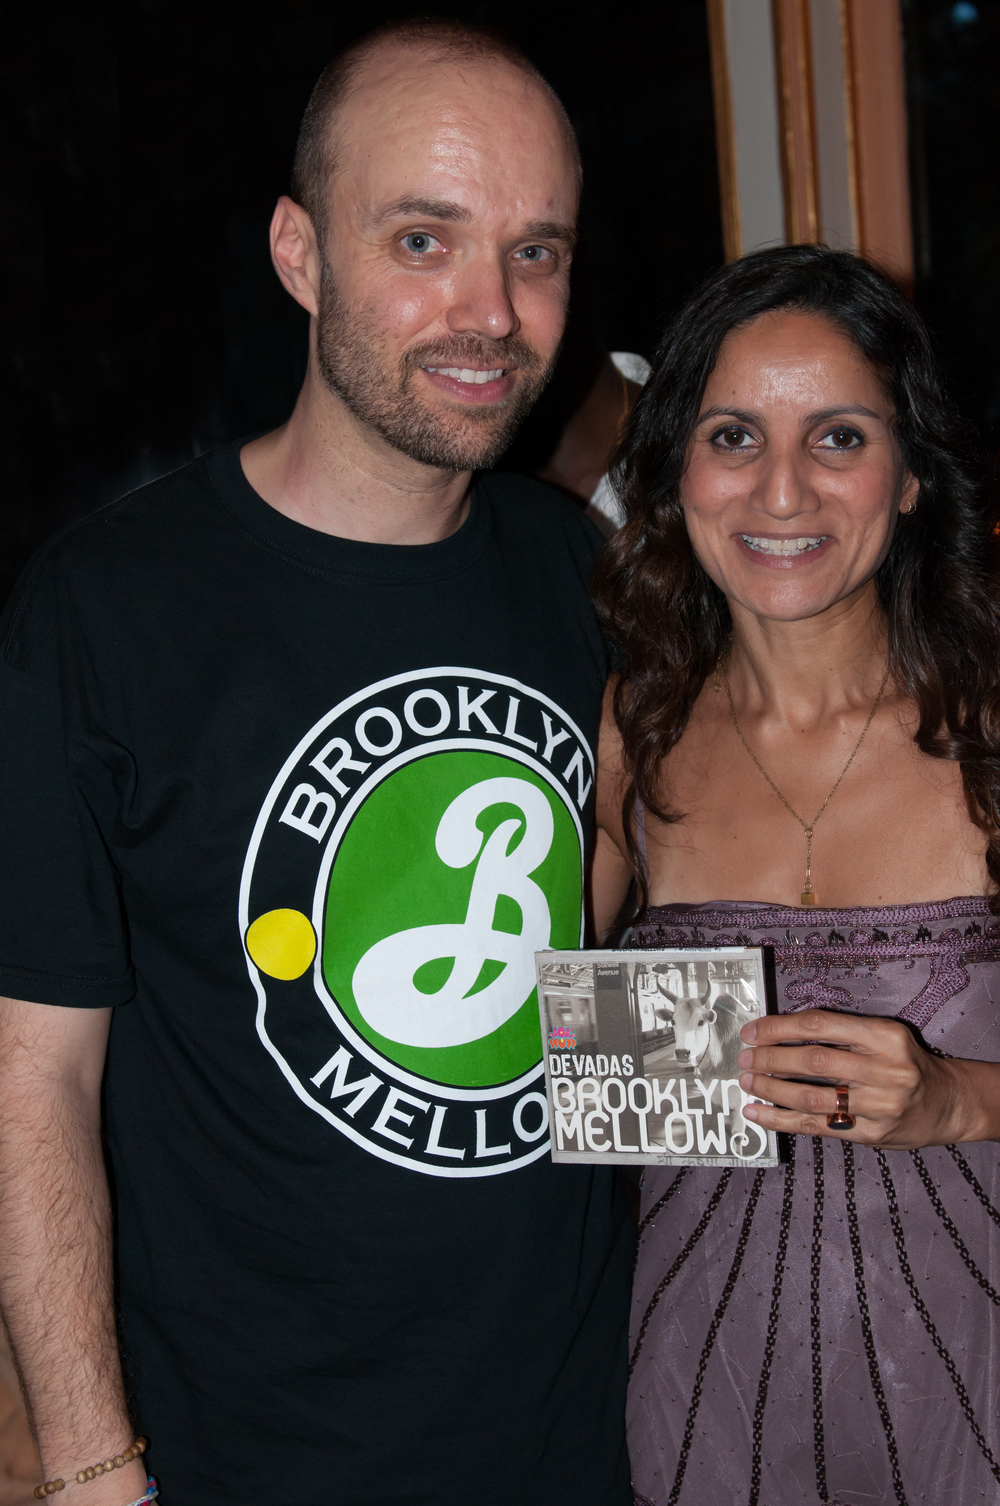 Devadas's Brooklyn Mellows CD Release Party @ Brooklyn Yoga School-37.jpg